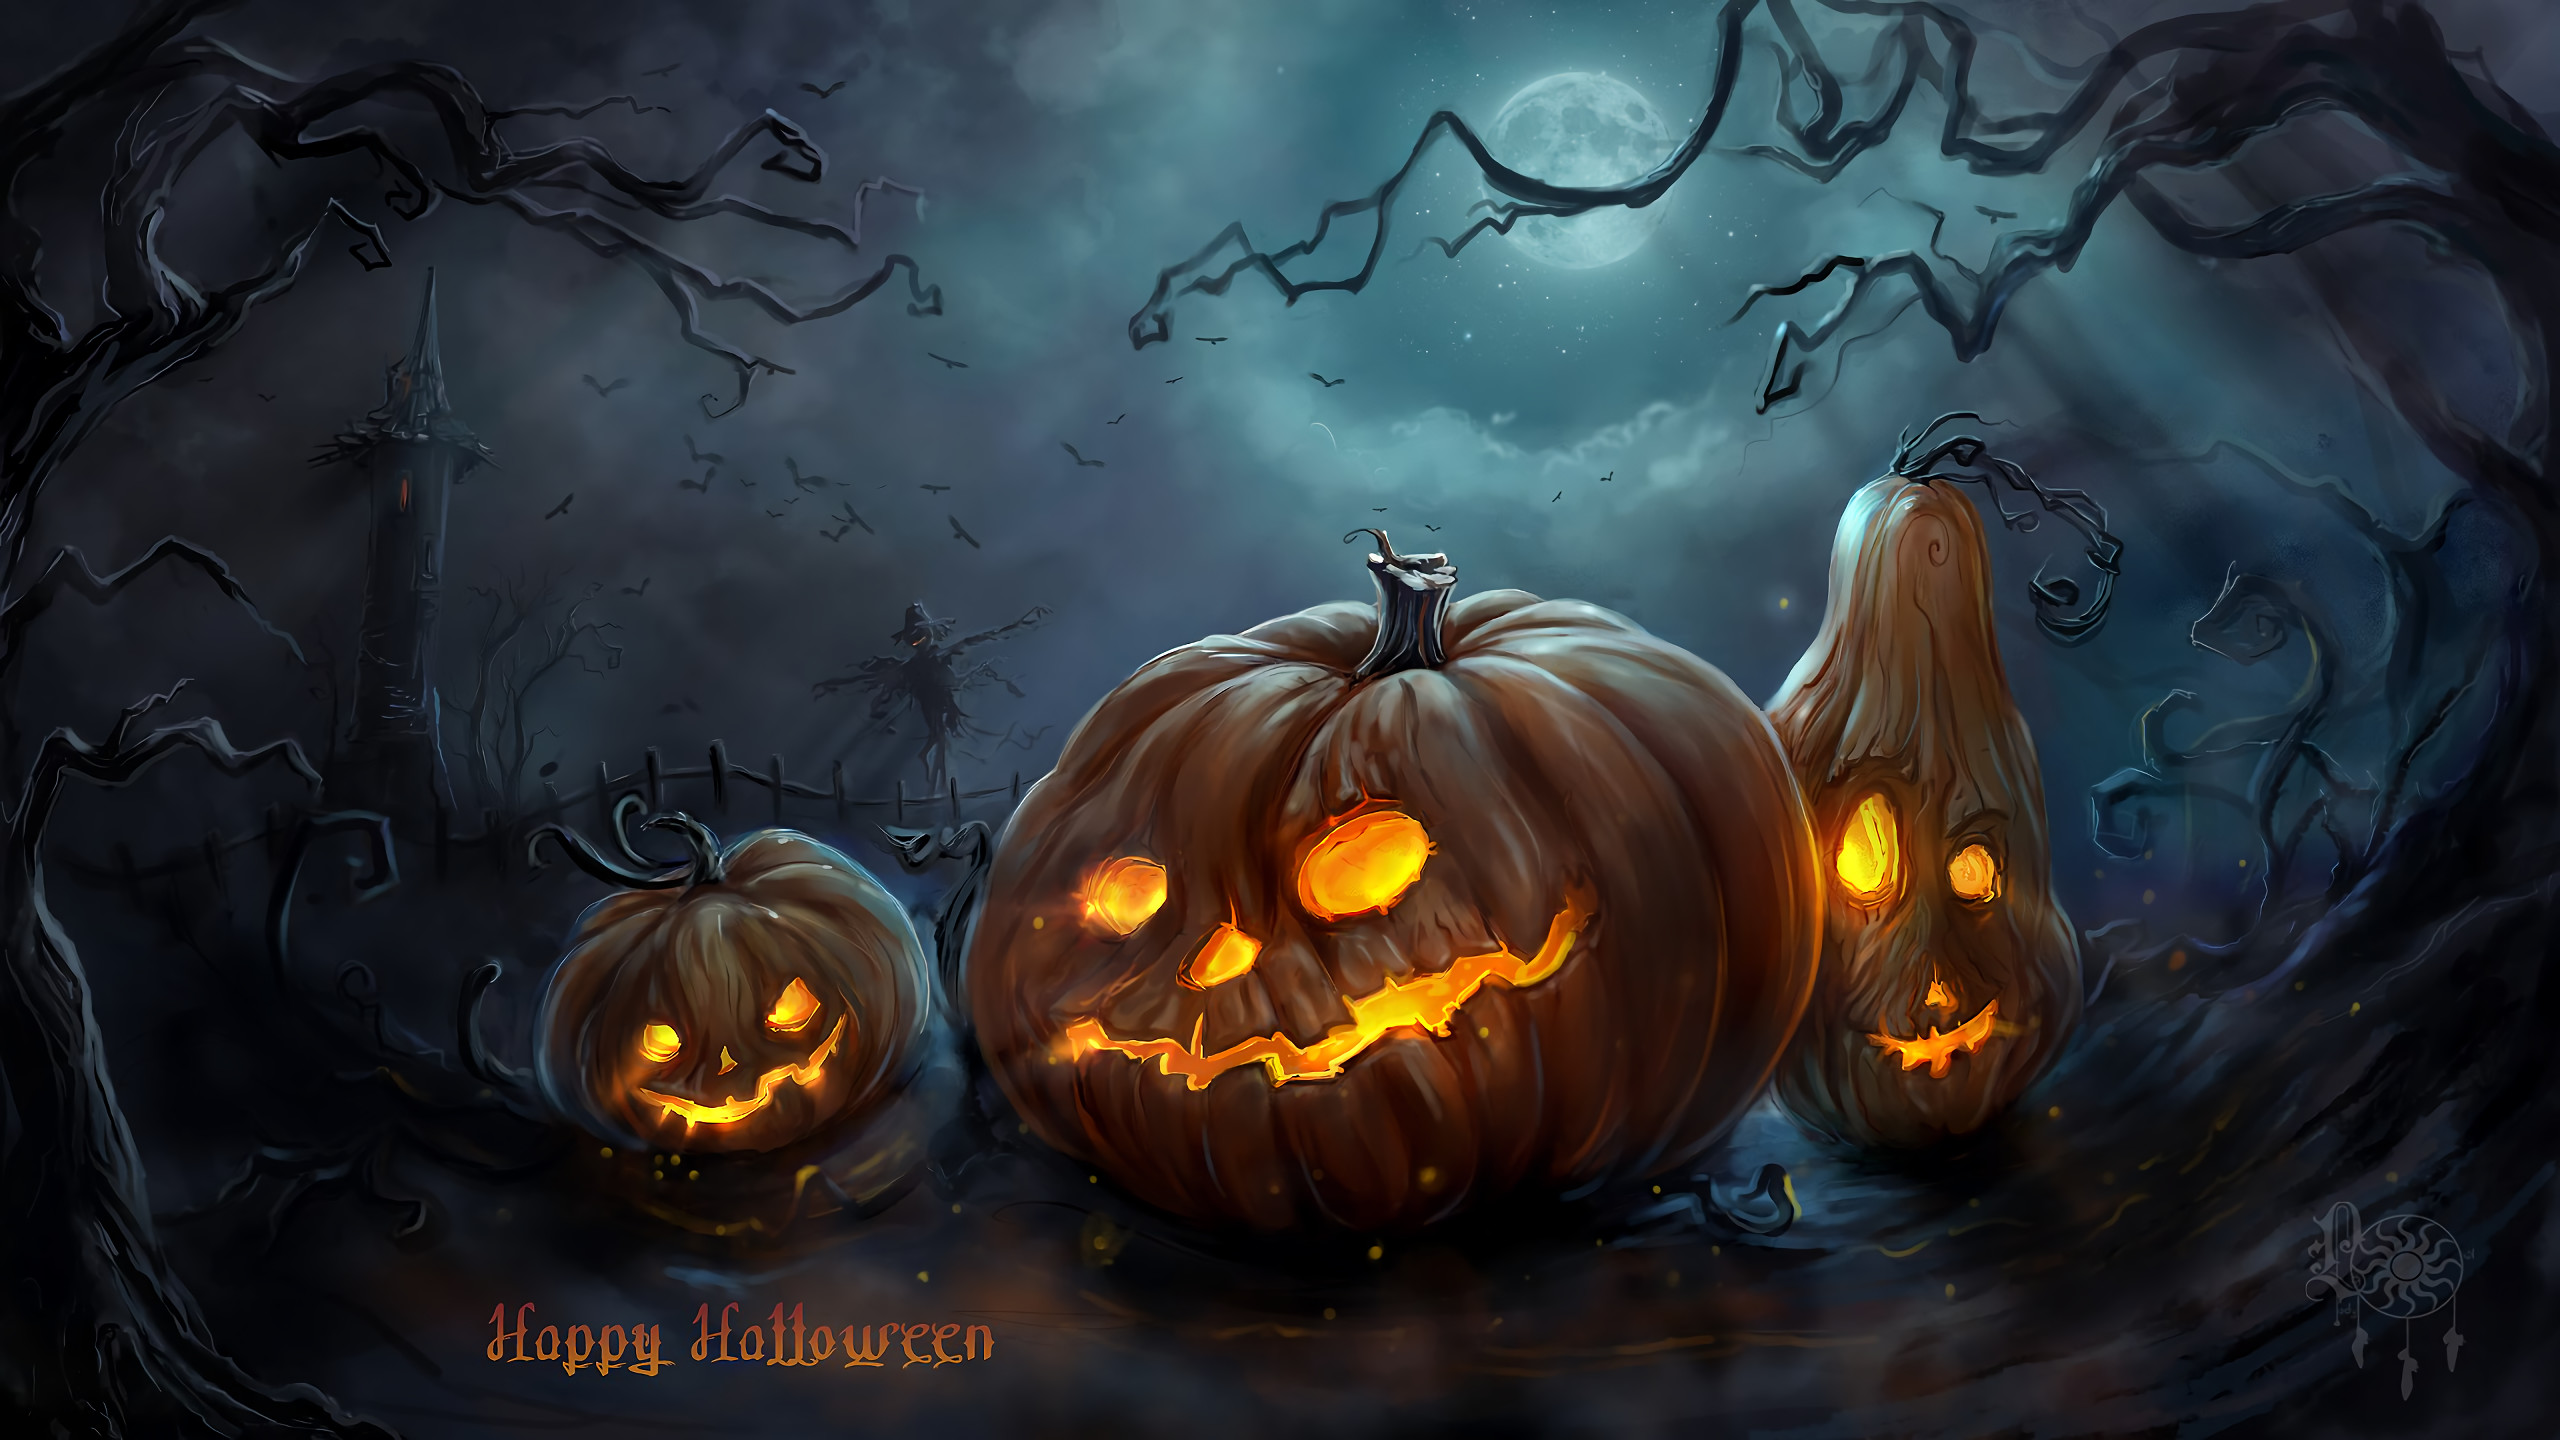 Top Wallpaper Halloween Spooky - 1201924-spooky-halloween-backgrounds-2560x1440-for-android-40  Best Photo Reference_494576.jpg